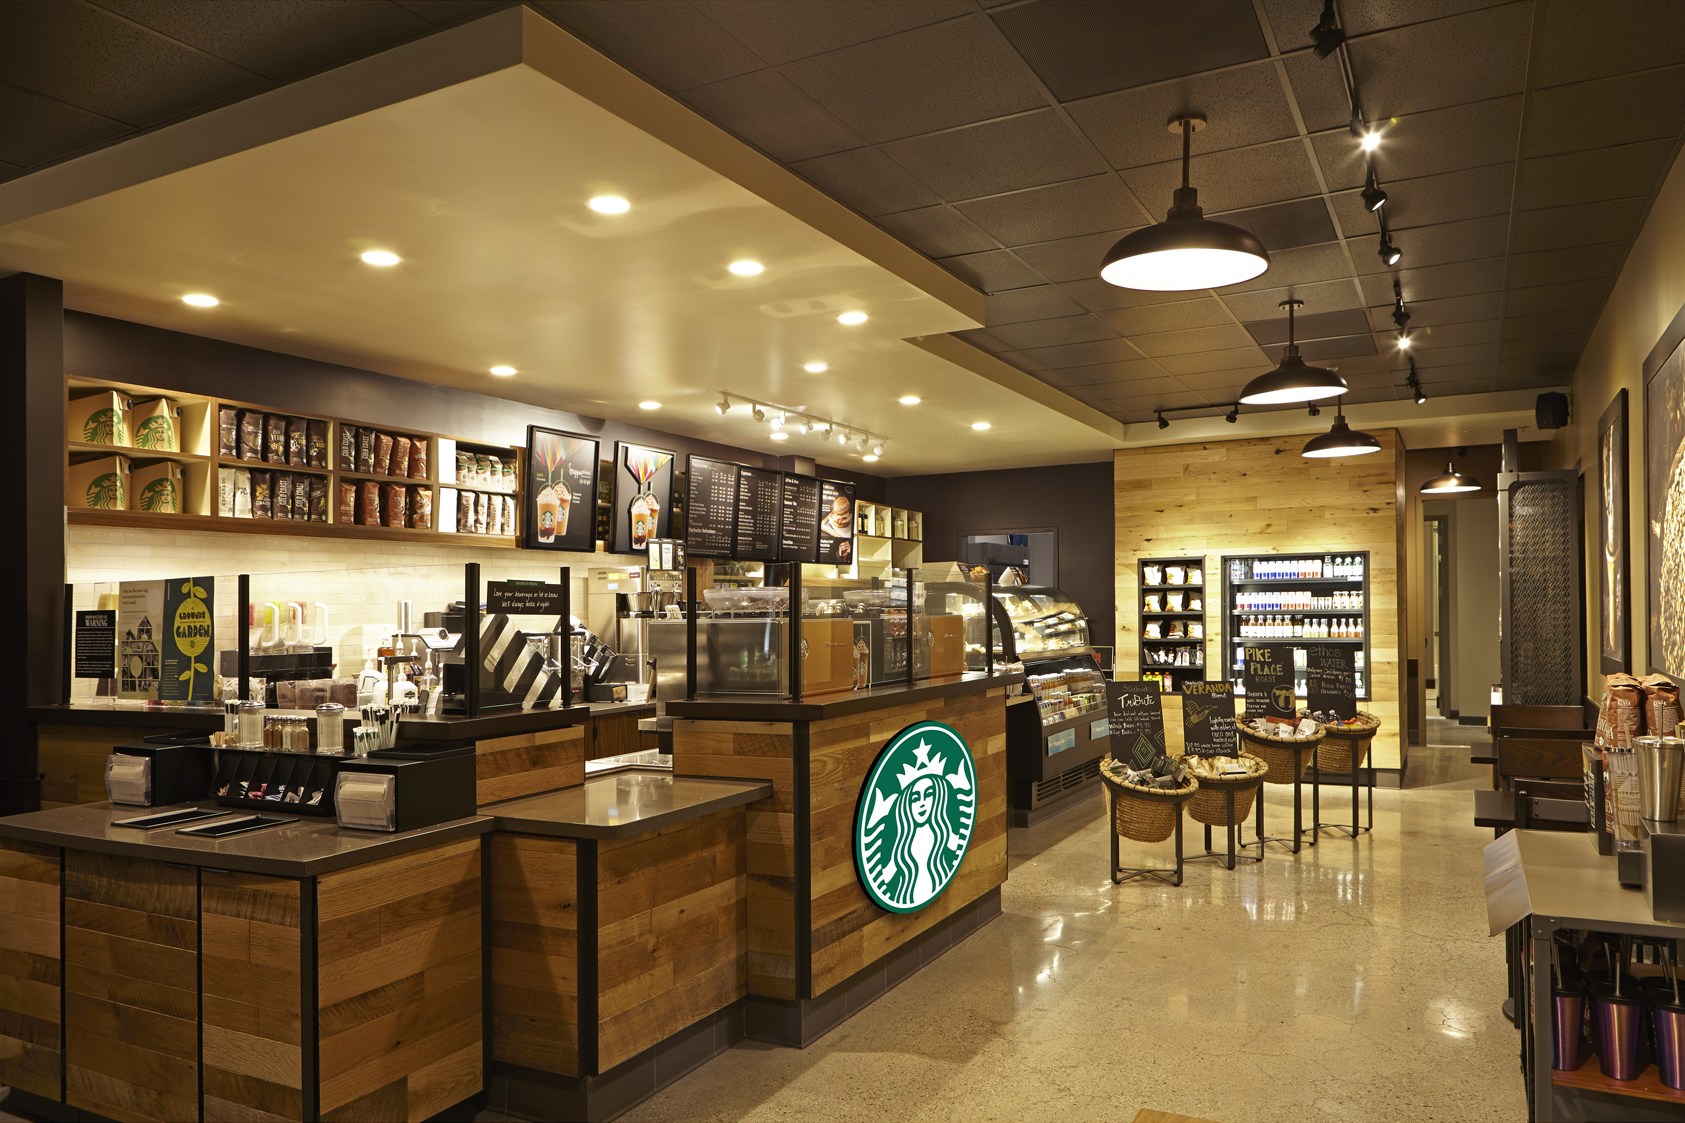 https://www.hotelsbyday.com/_data/default-hotel_image/0/2259/46-laxax-starbucks-outlet.jpg